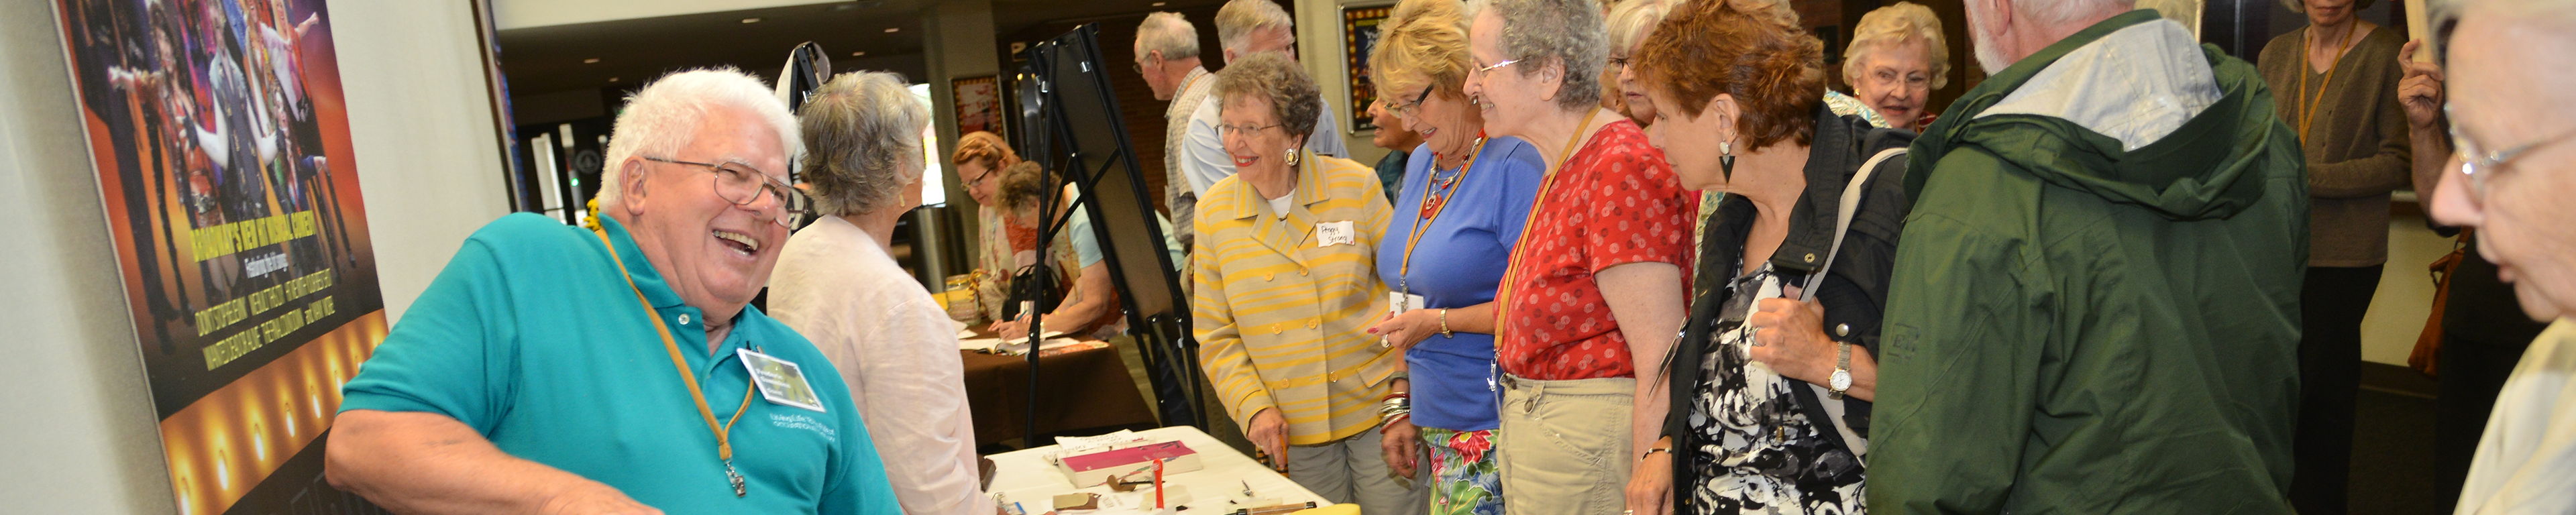 Page banner: OLLI at WMU members attend an event